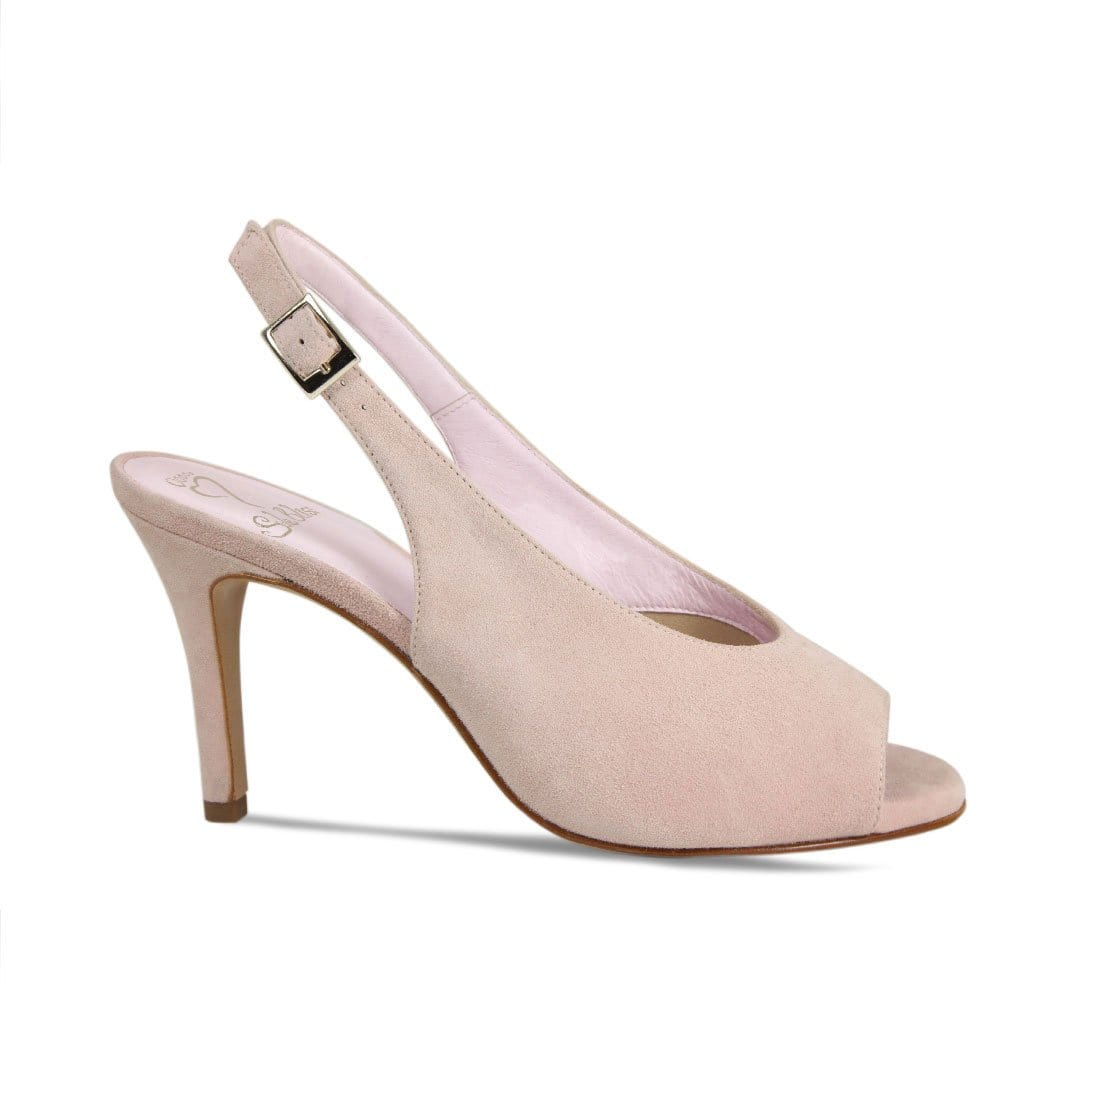 Blush Suede Peep-Toe High Heeled Pumps